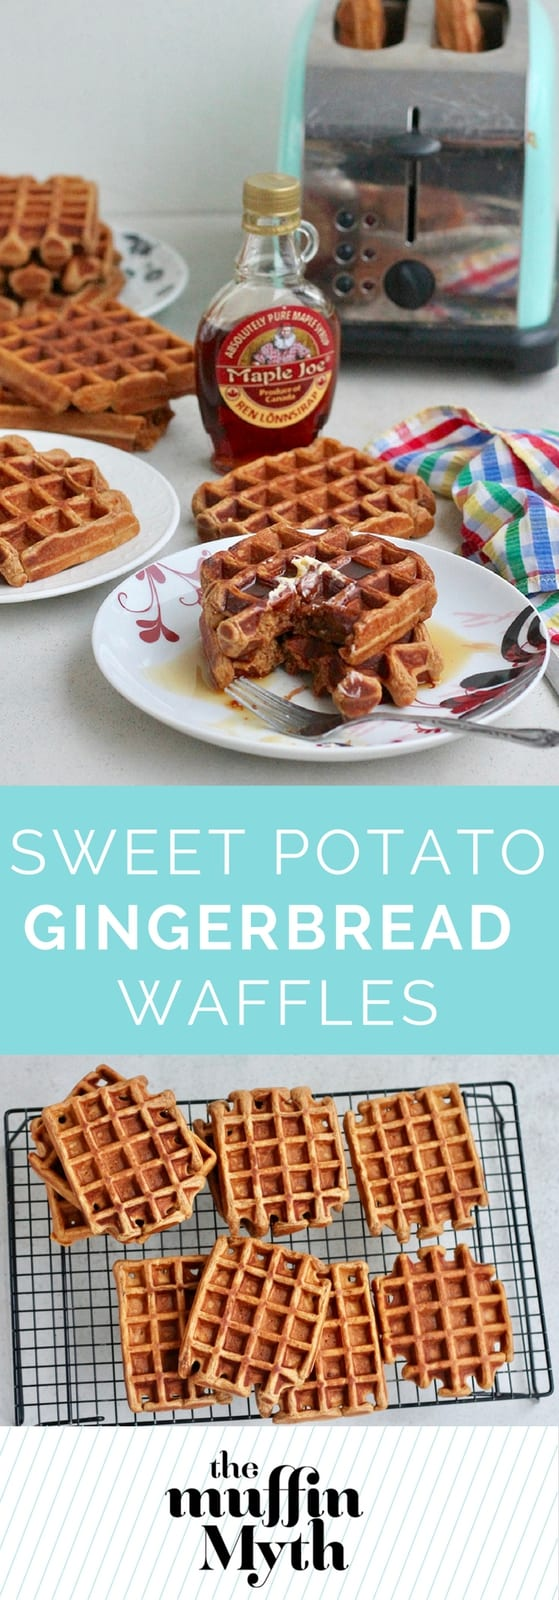 Sweet Potato Gingerbread Waffles made with whole wheat flour, buttermilk, molasses, and scented with festive spices. These make perfect freezer waffles that you can simply pop in the toaster when you're in the mood for waffles.  #waffles #breakfast #gingerbread #healthy #wholewheat #makeahead #sweetpotato